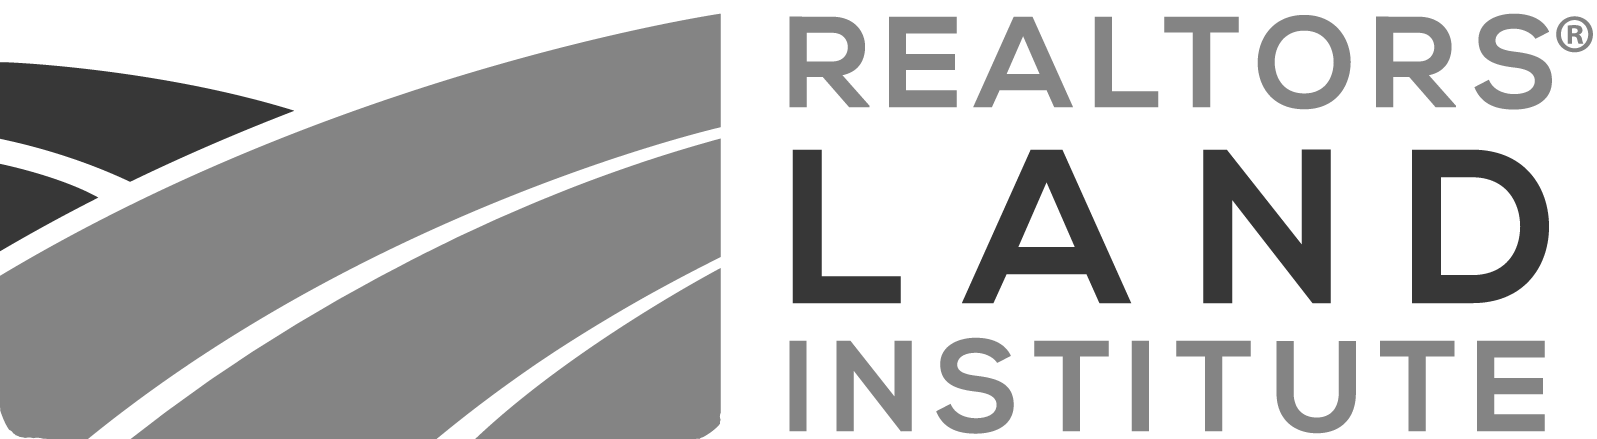 realtors land institute logo.png